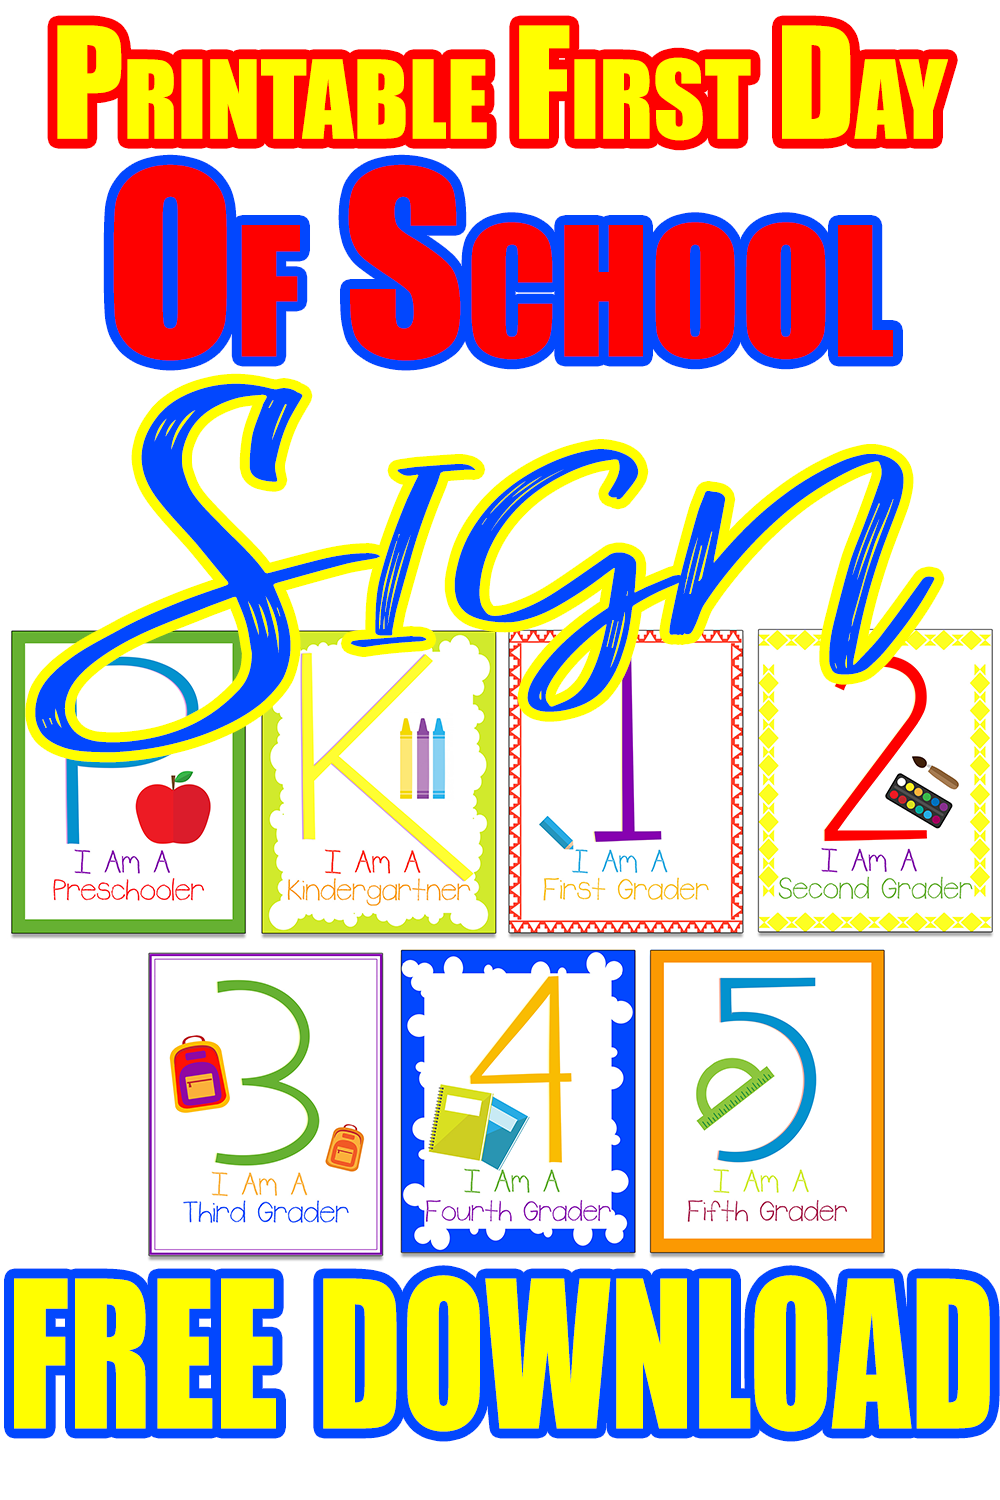 image relating to First Day of Preschool Free Printable named Printable 1st Working day of Higher education Symptoms: Pre K for the duration of 5th Quality